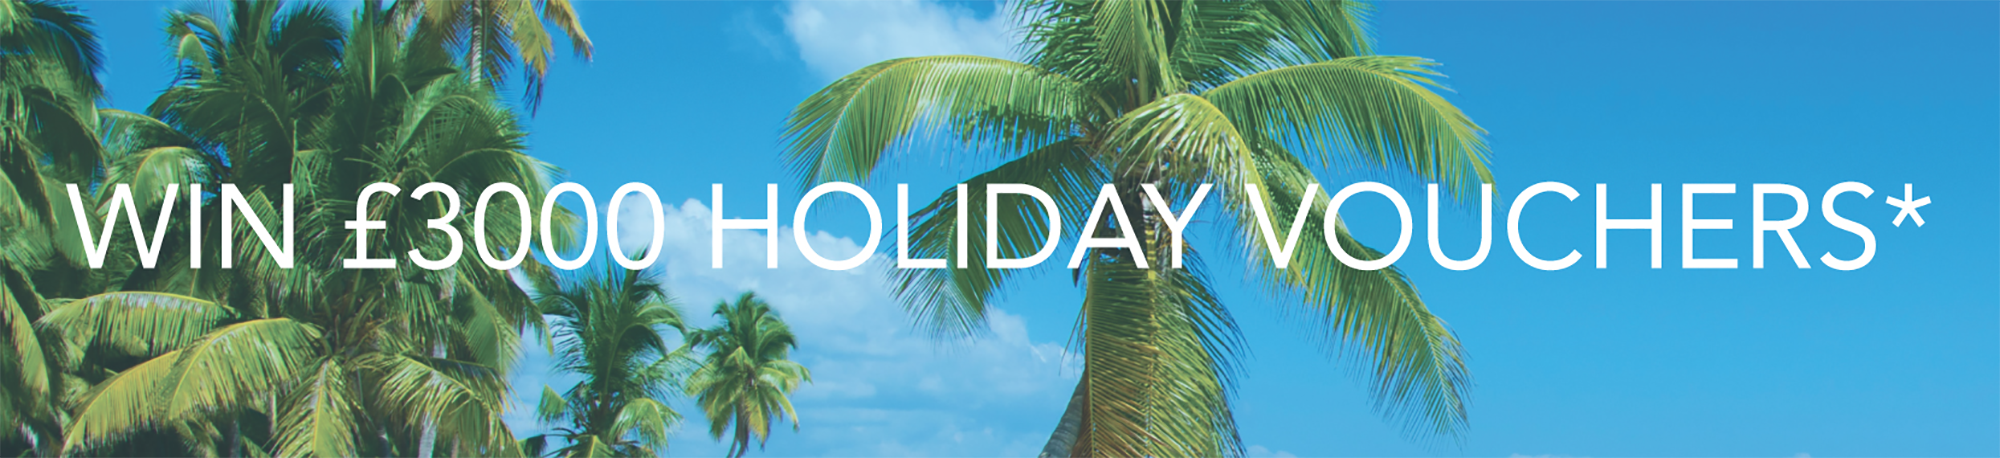 Win £3000 holiday vouchers!*